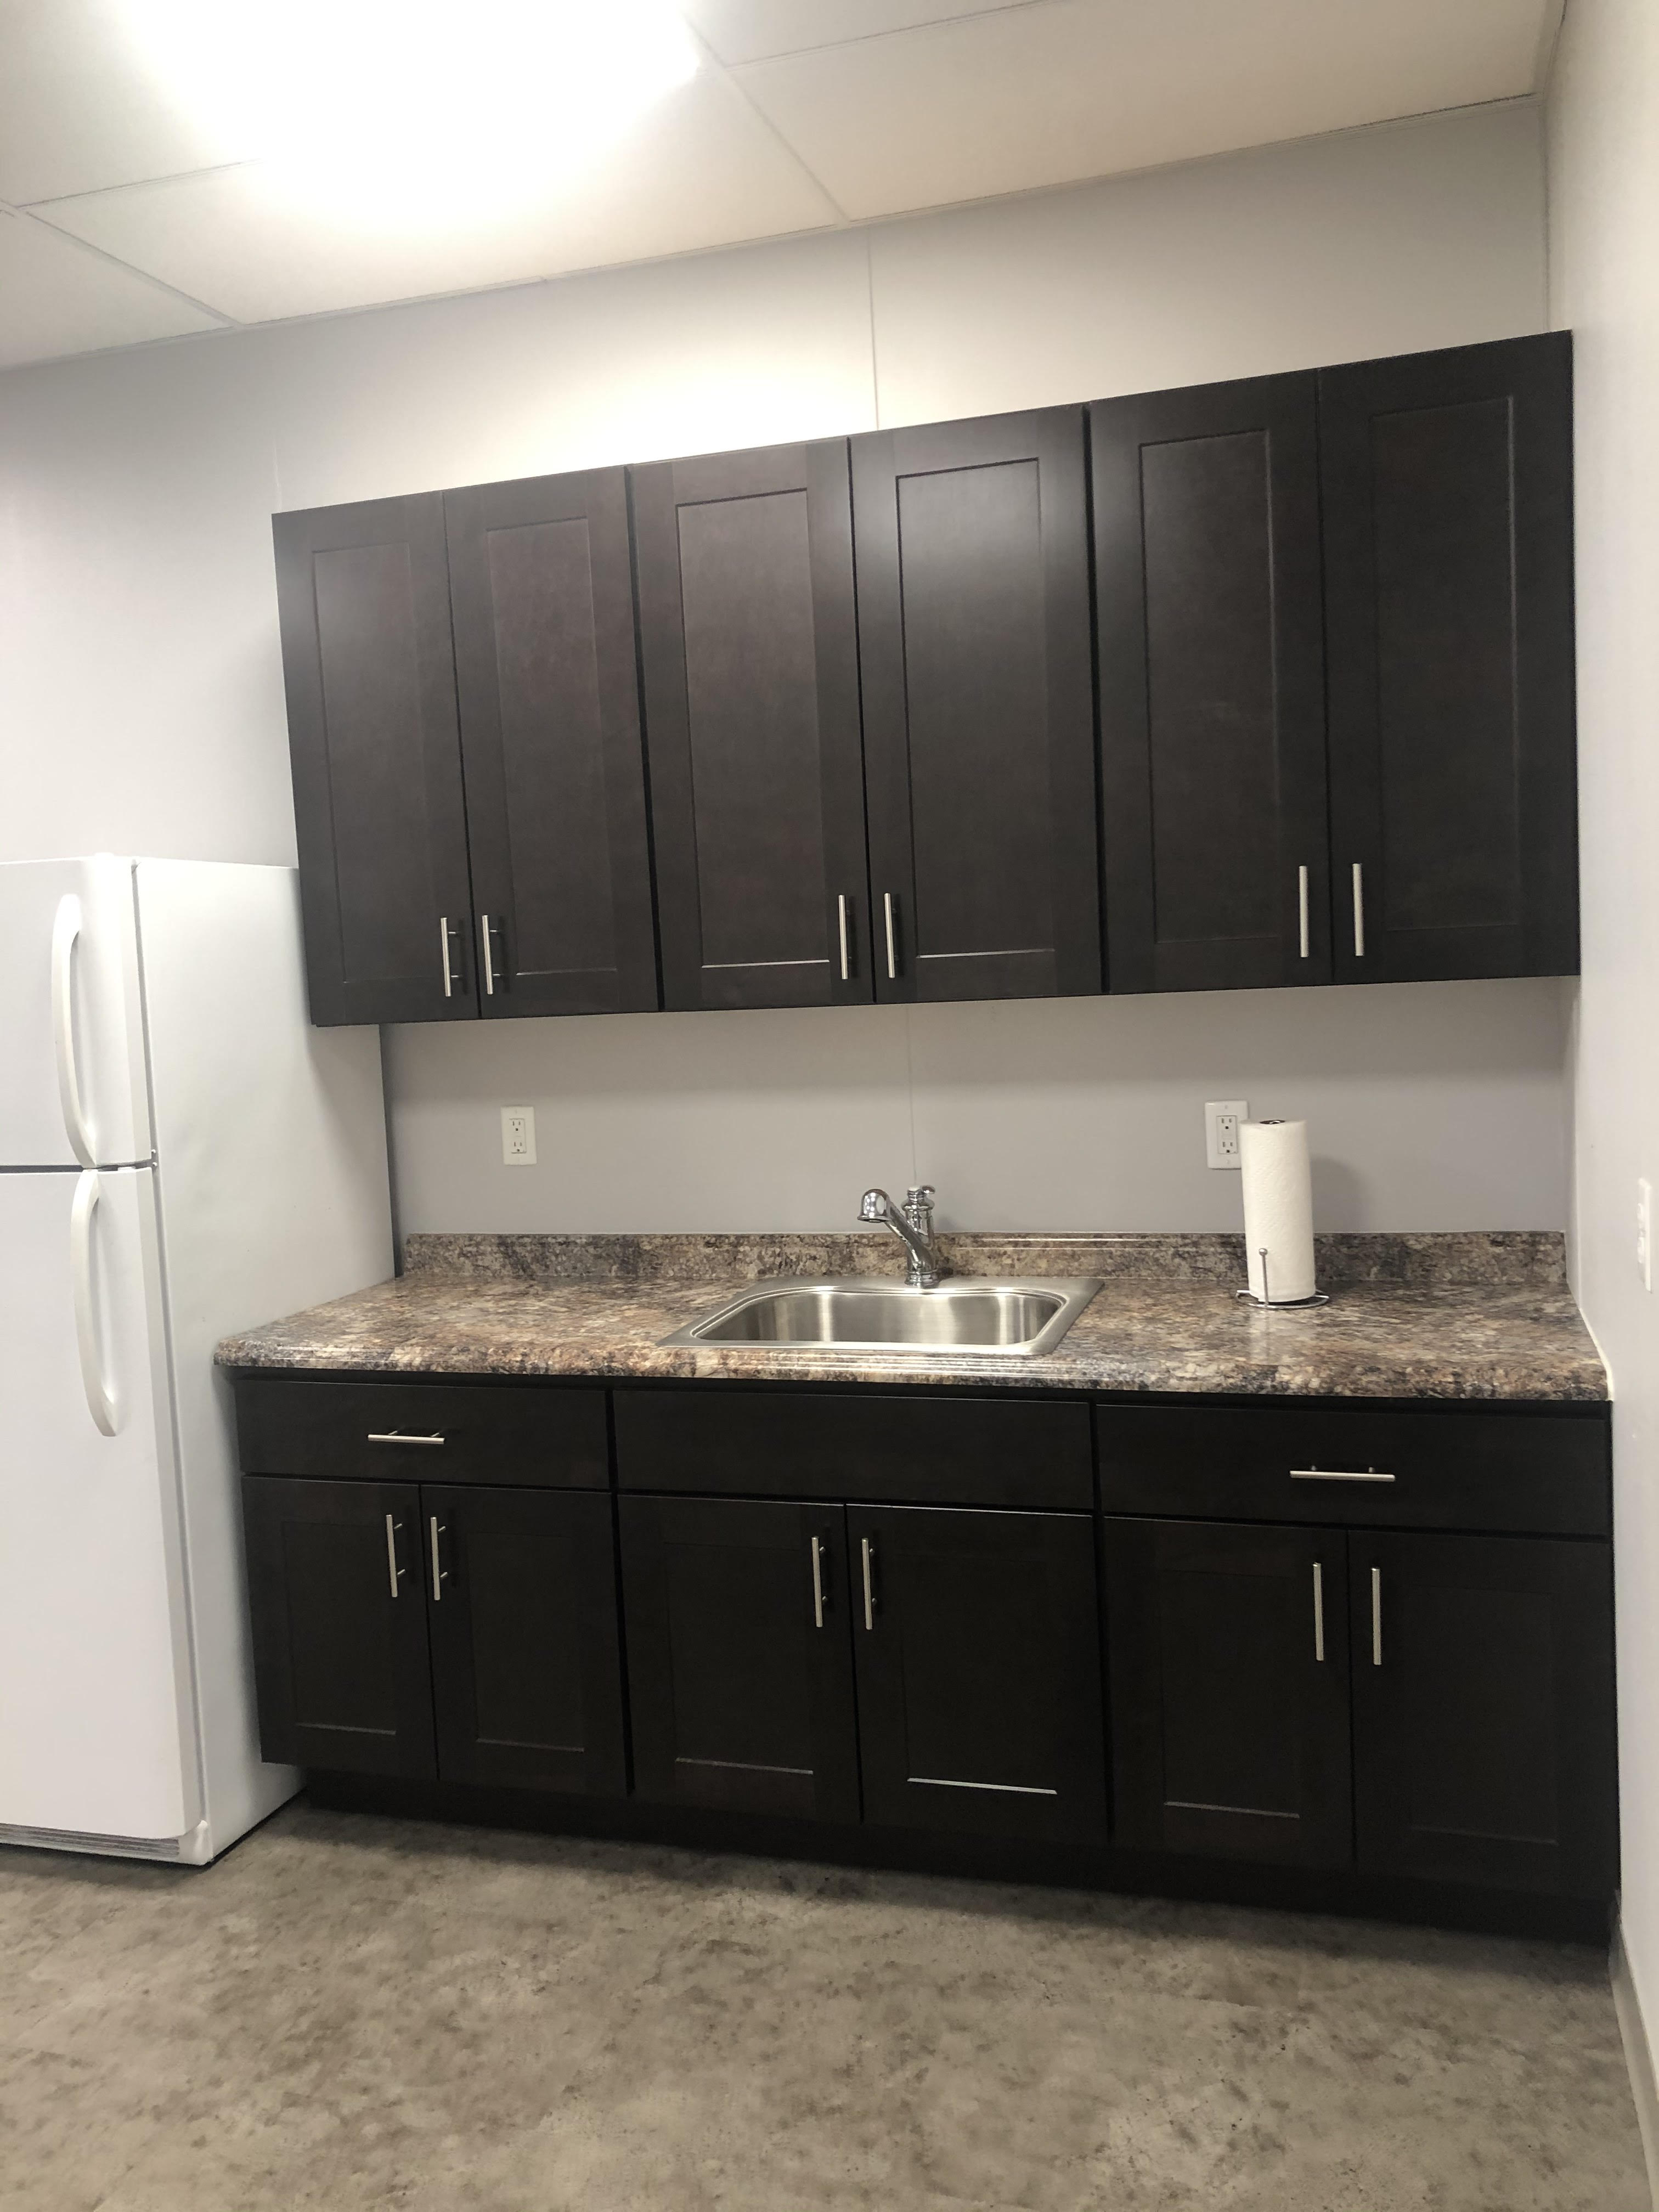 DRIVE Professional Building Lunch Room Kitchenette